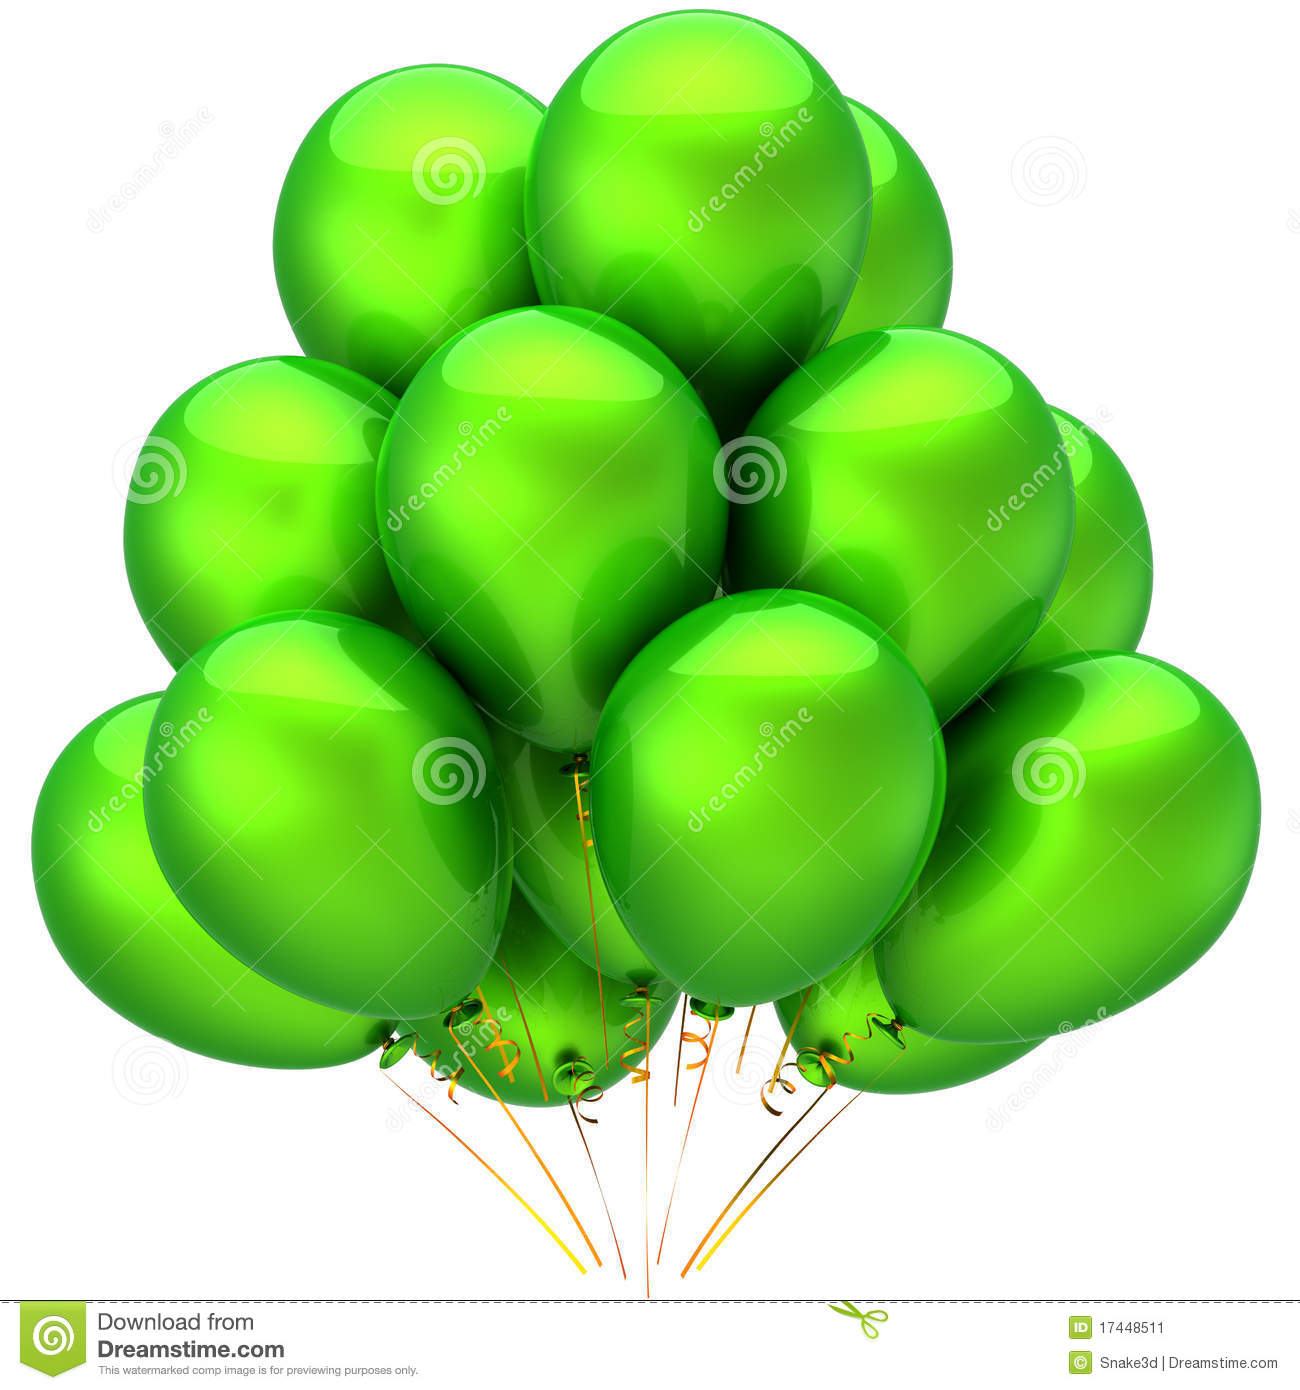 Green helium balloons stock illustration. Image of holiday ...